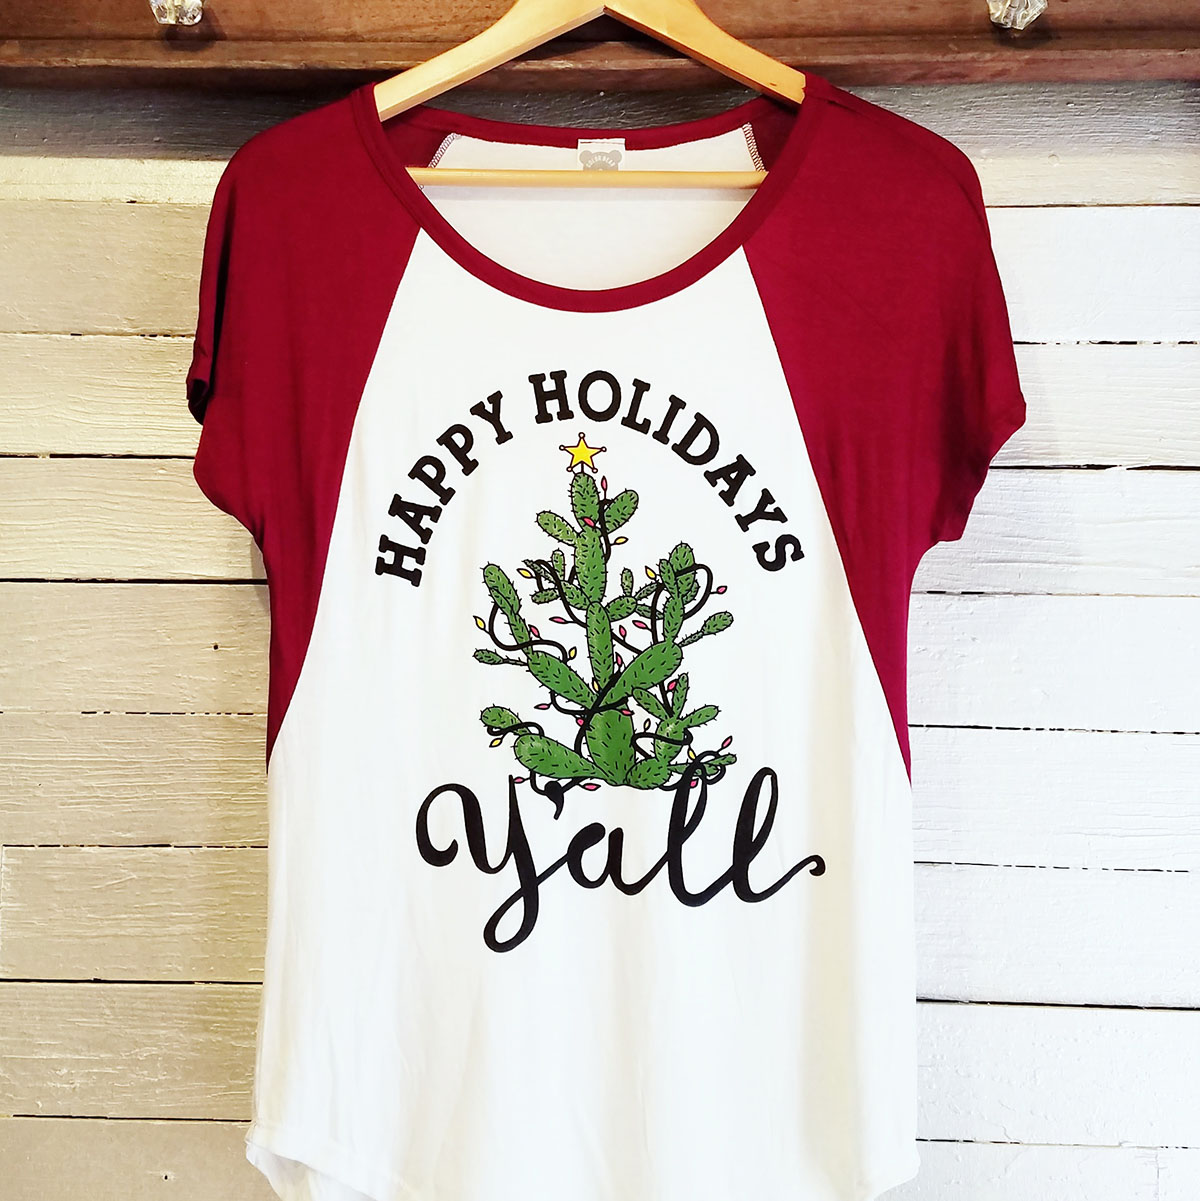 Celebrate a merry Texas Christmas in this spunky and adorable tee. $25